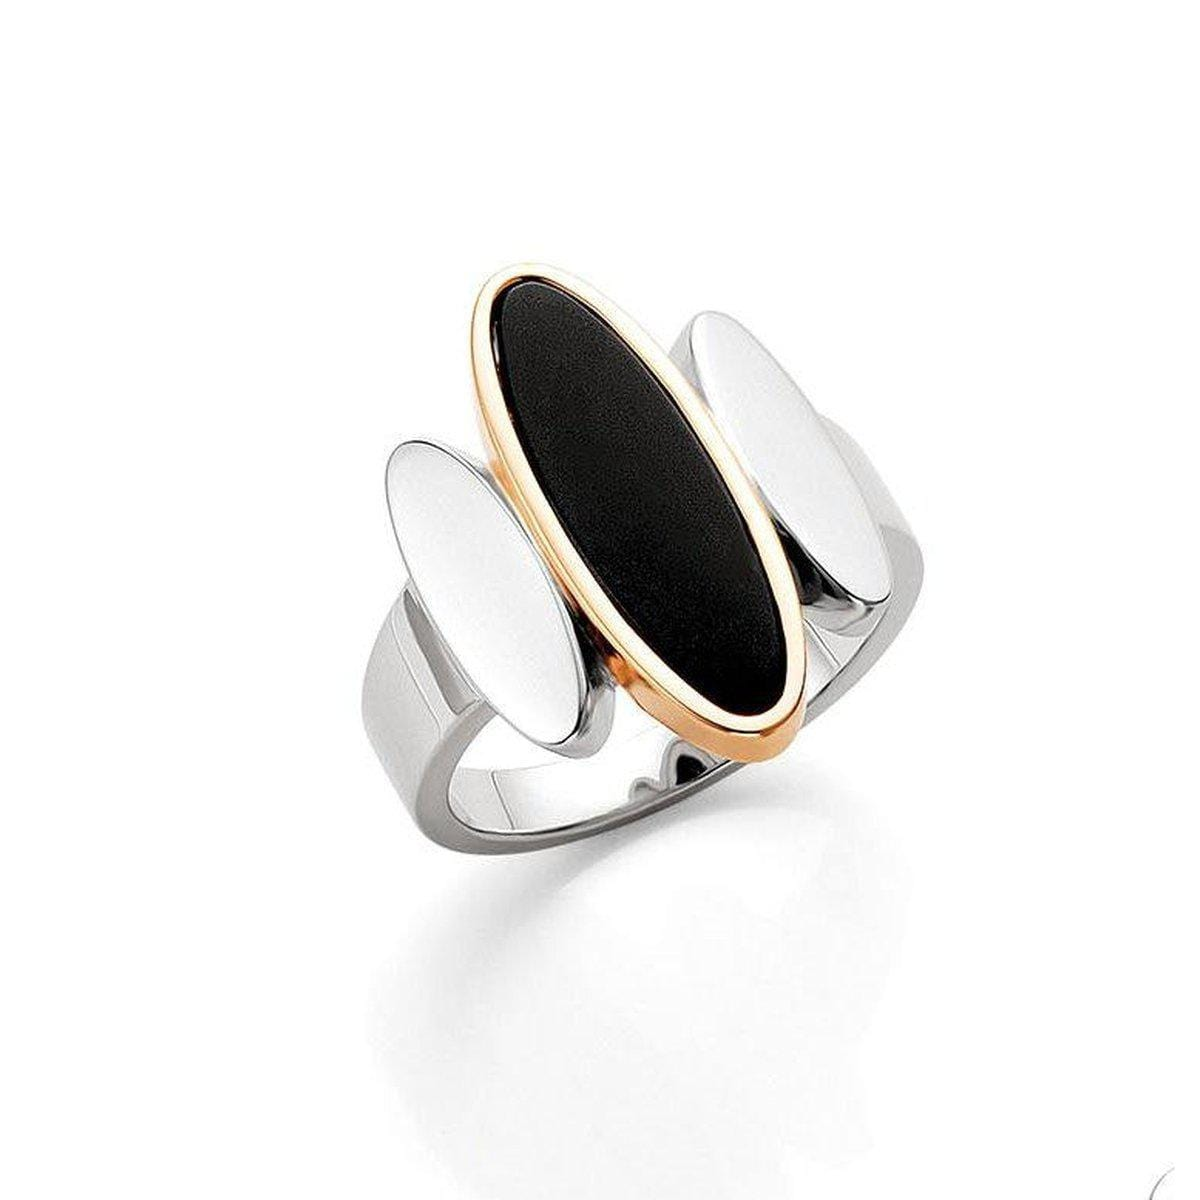 Rose Gold & Rhodium Plated Sterling Silver Onyx Ring - 42/03201-Breuning-Renee Taylor Gallery